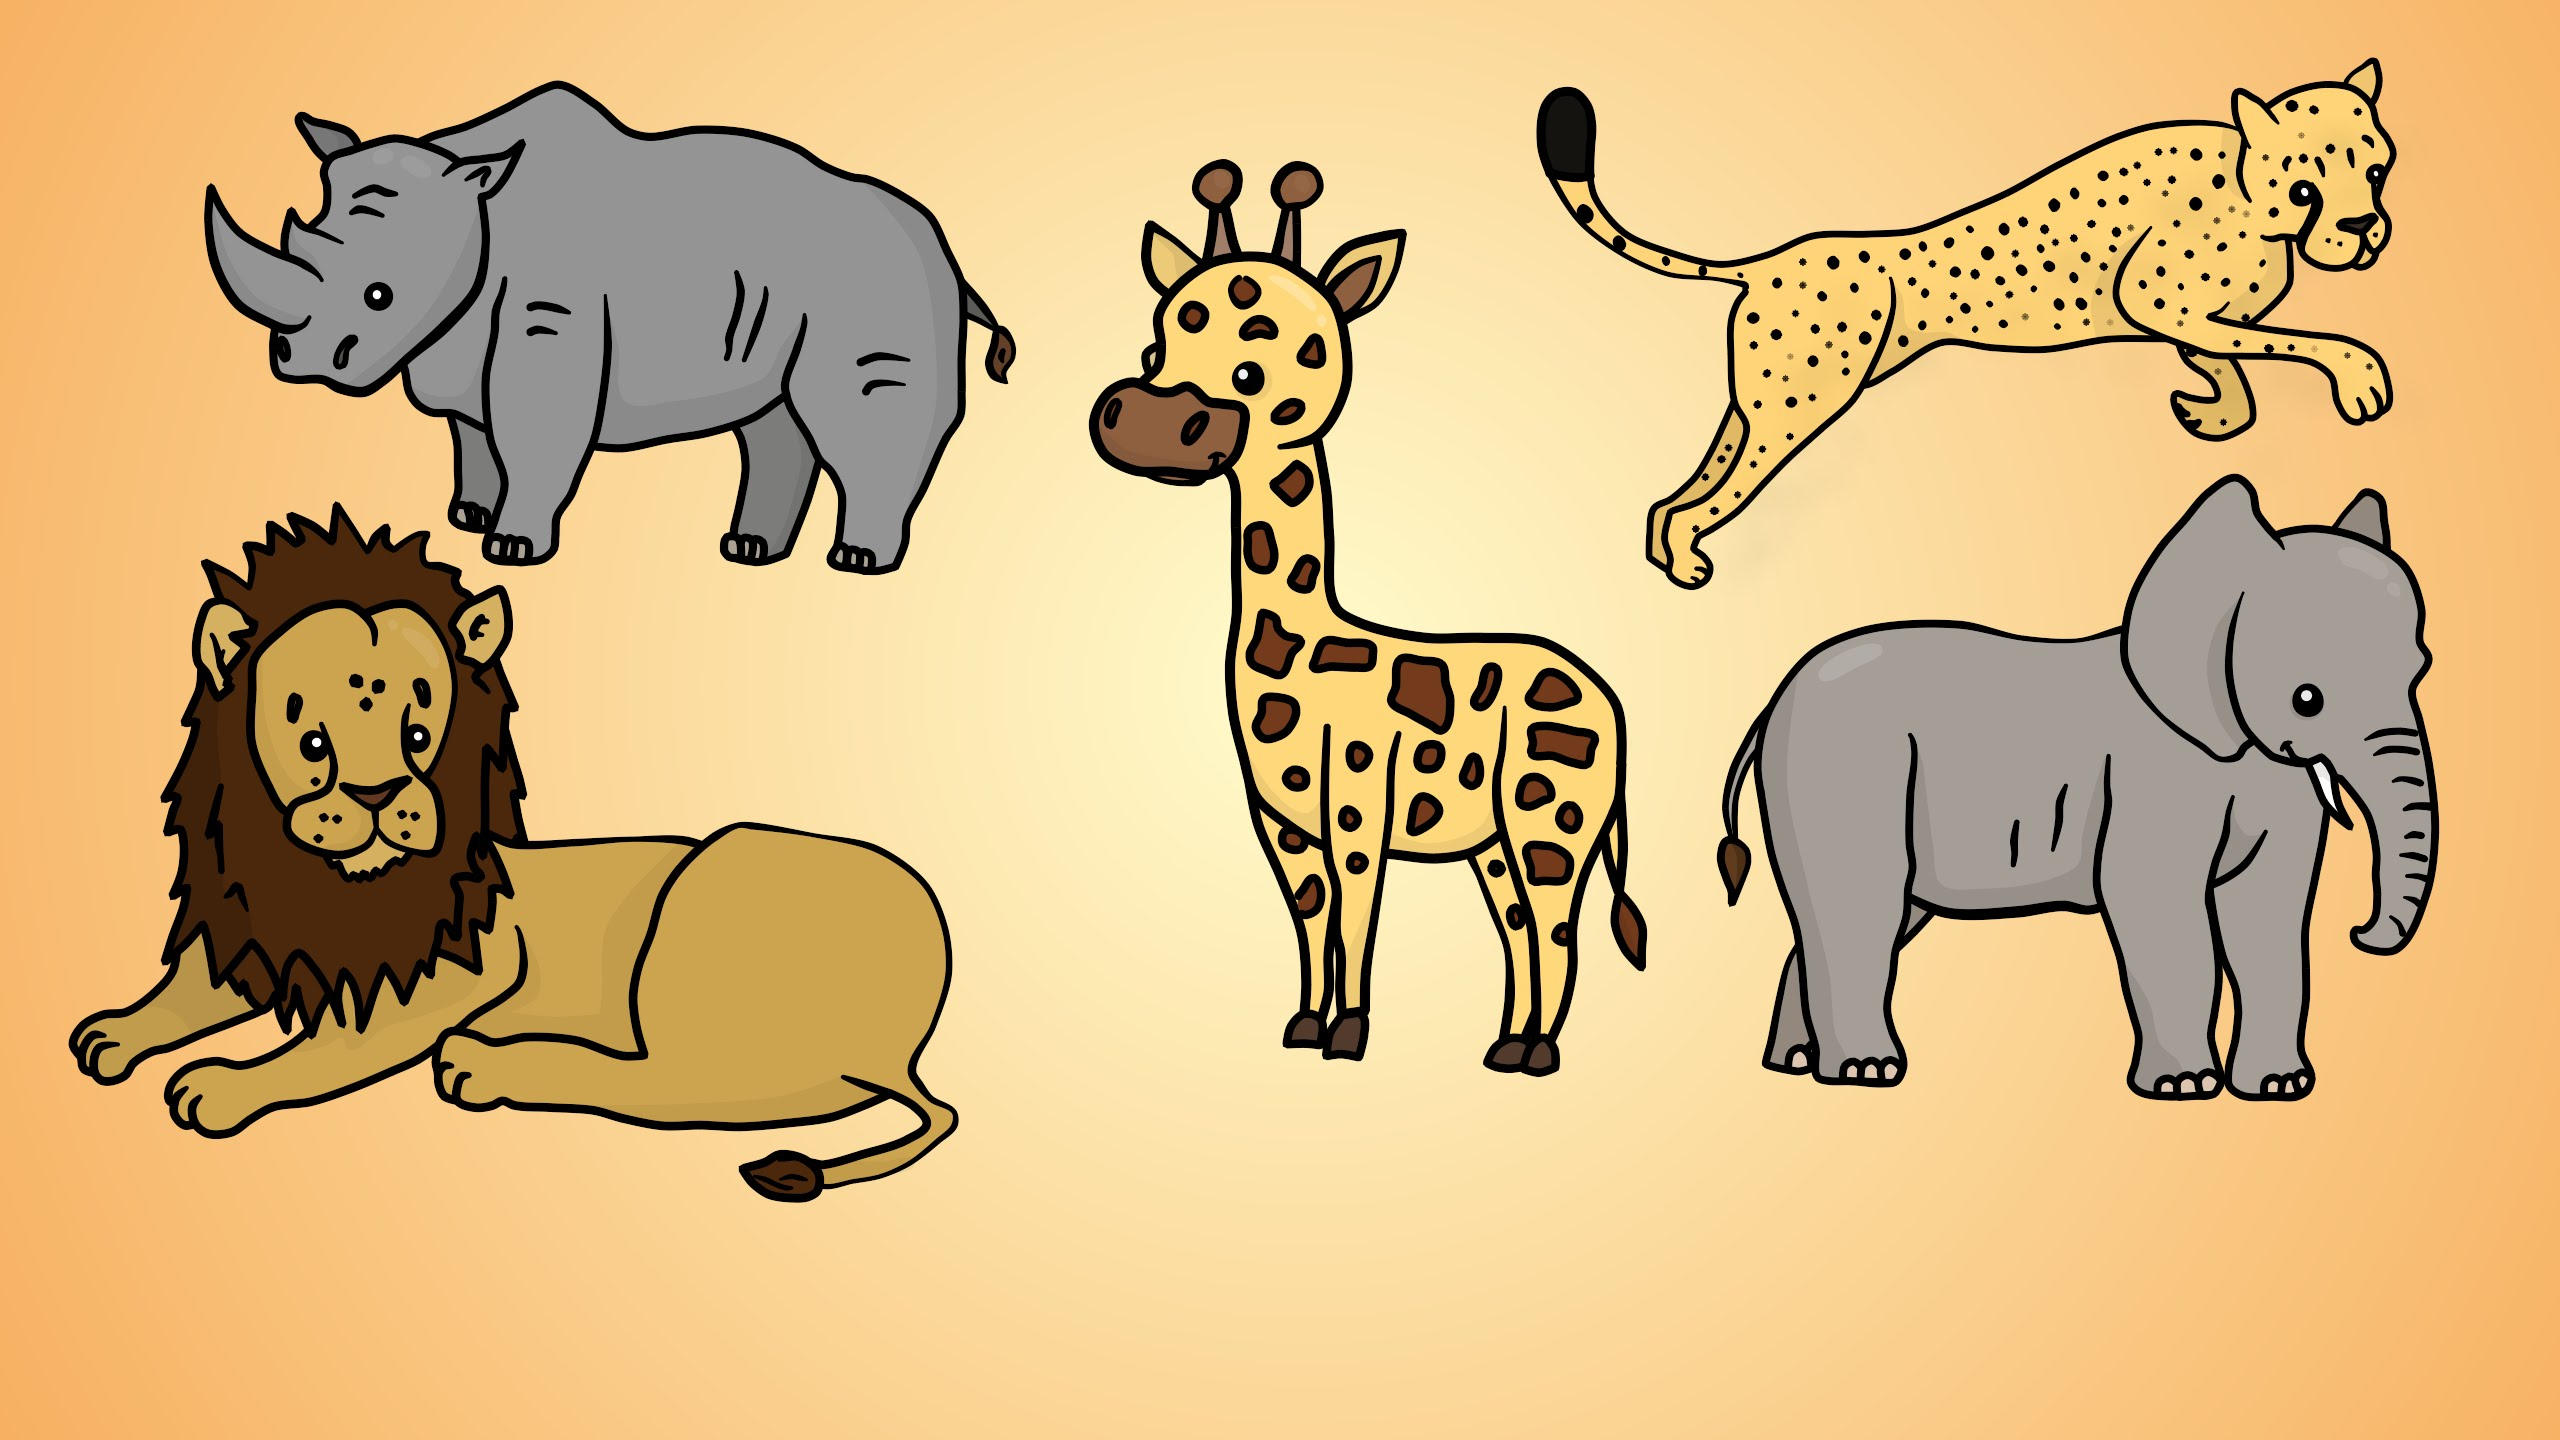 Line Drawings Of African Animals : Wild animals drawing at getdrawings.com free for personal use